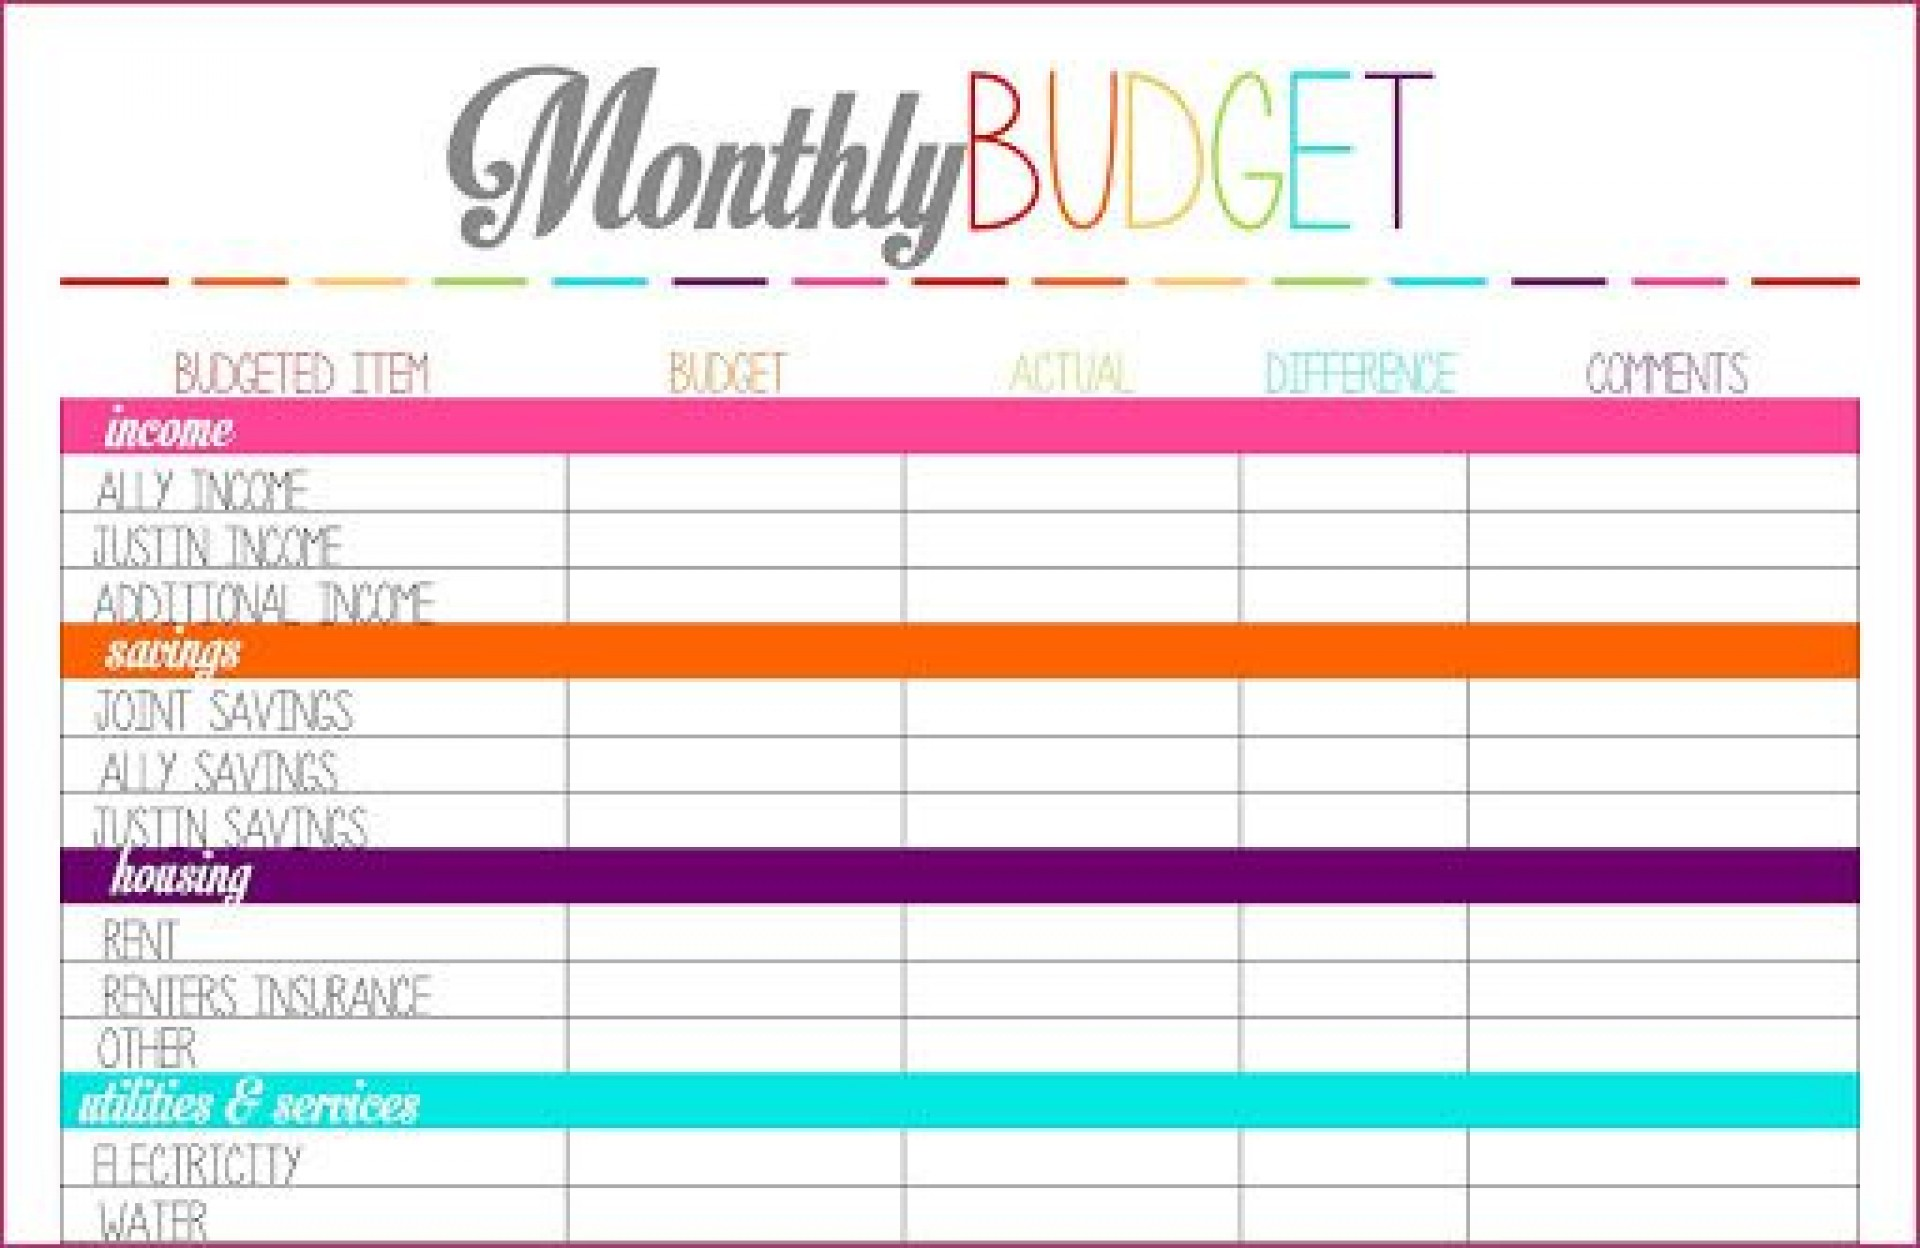 002 Amazing Monthly Budget Spreadsheet Template Free Concept  Personal1920